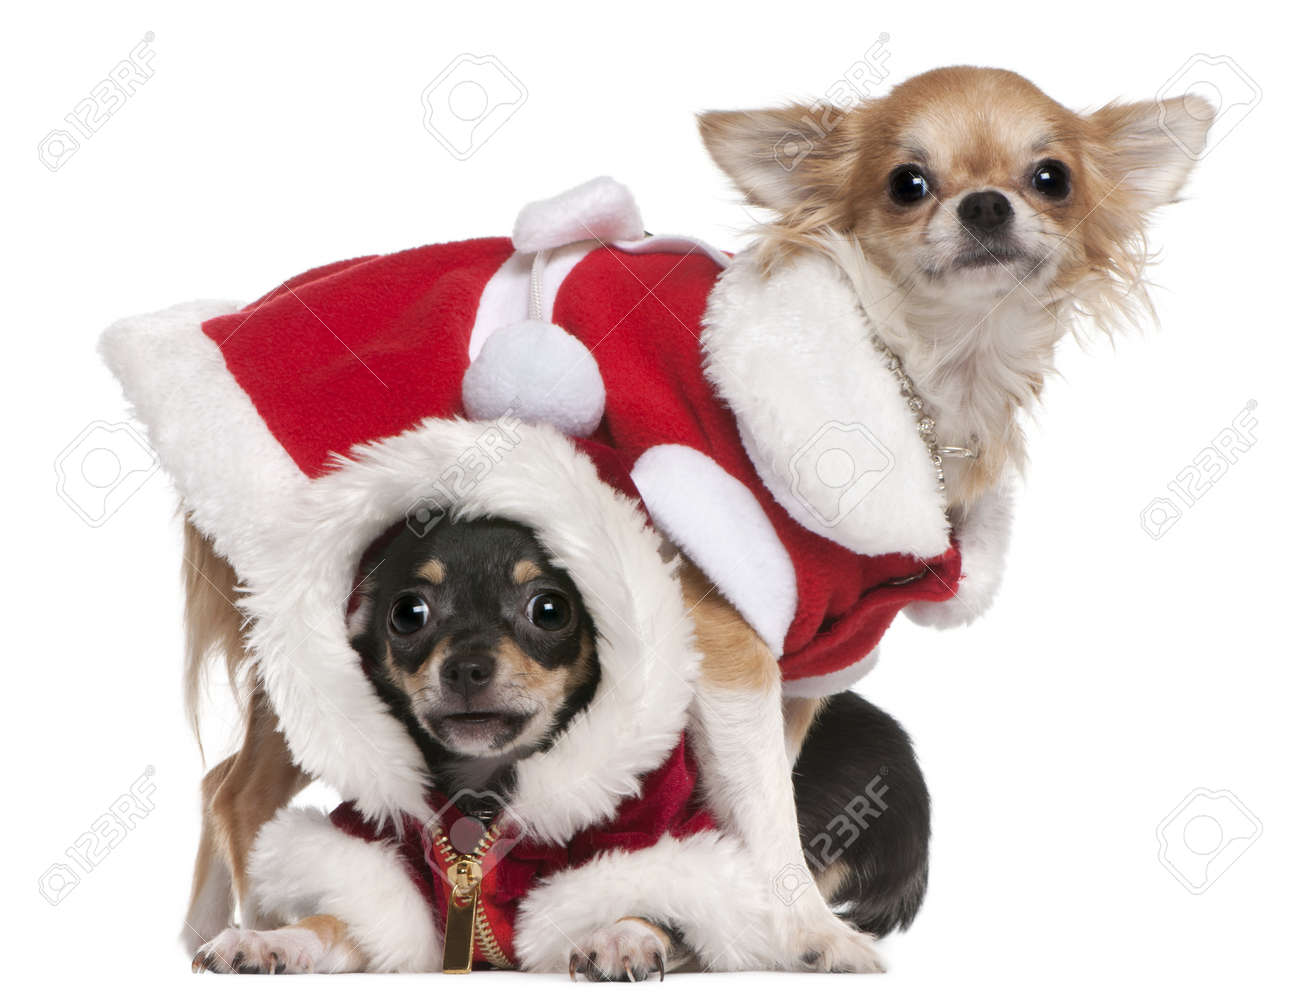 Chihuahuas dressed in Santa outfits for Christmas in front of white background Stock Photo - 8650602